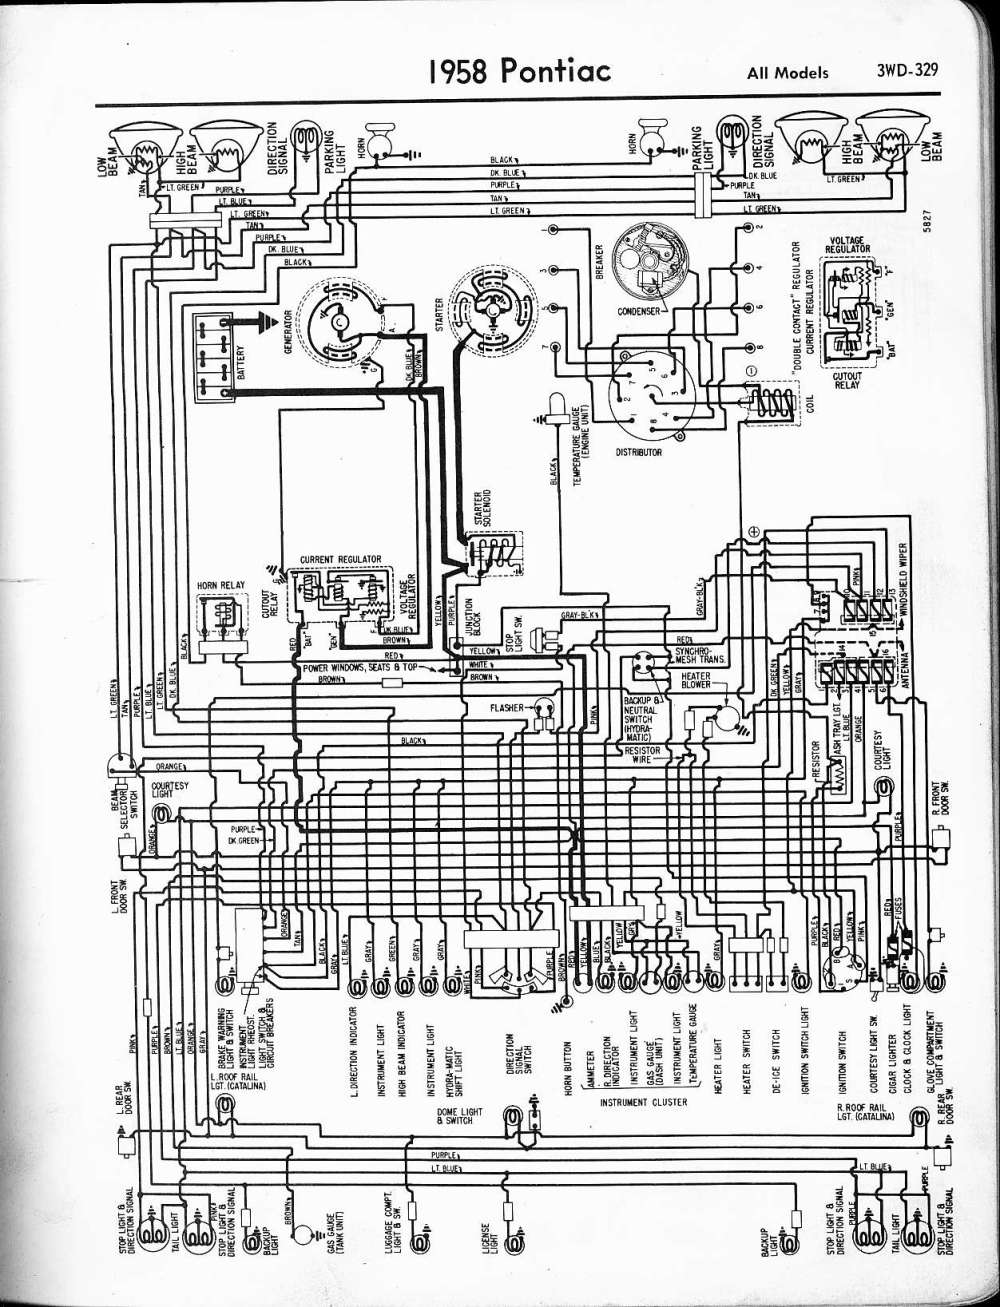 medium resolution of 1960 pontiac wiring diagram wiring diagram meta 2000 pontiac montana wiring diagram pontiac wiring 1957